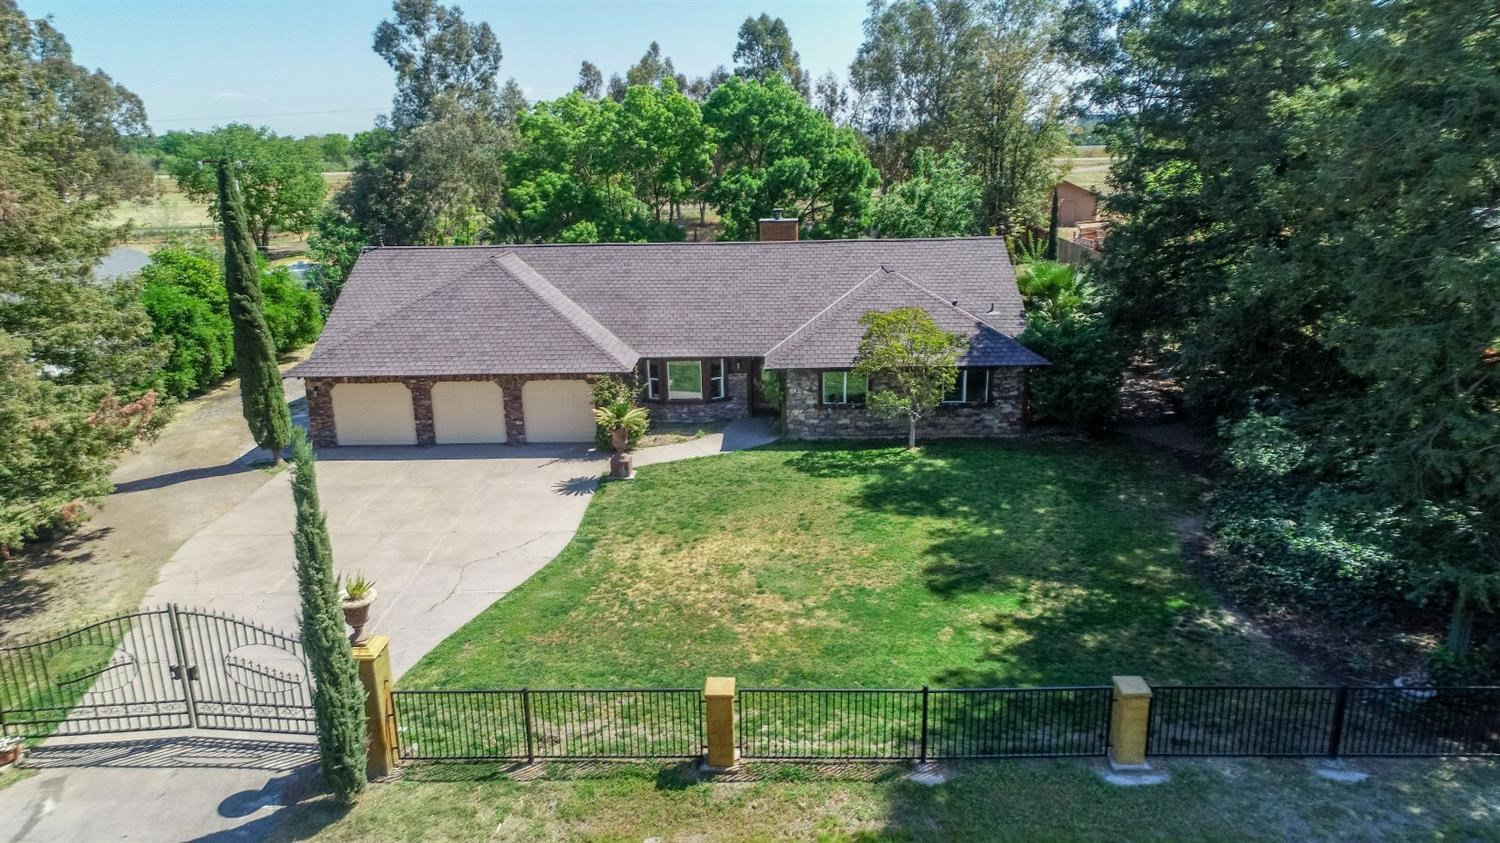 Sacramento Country Home on 1 Acre For Sale